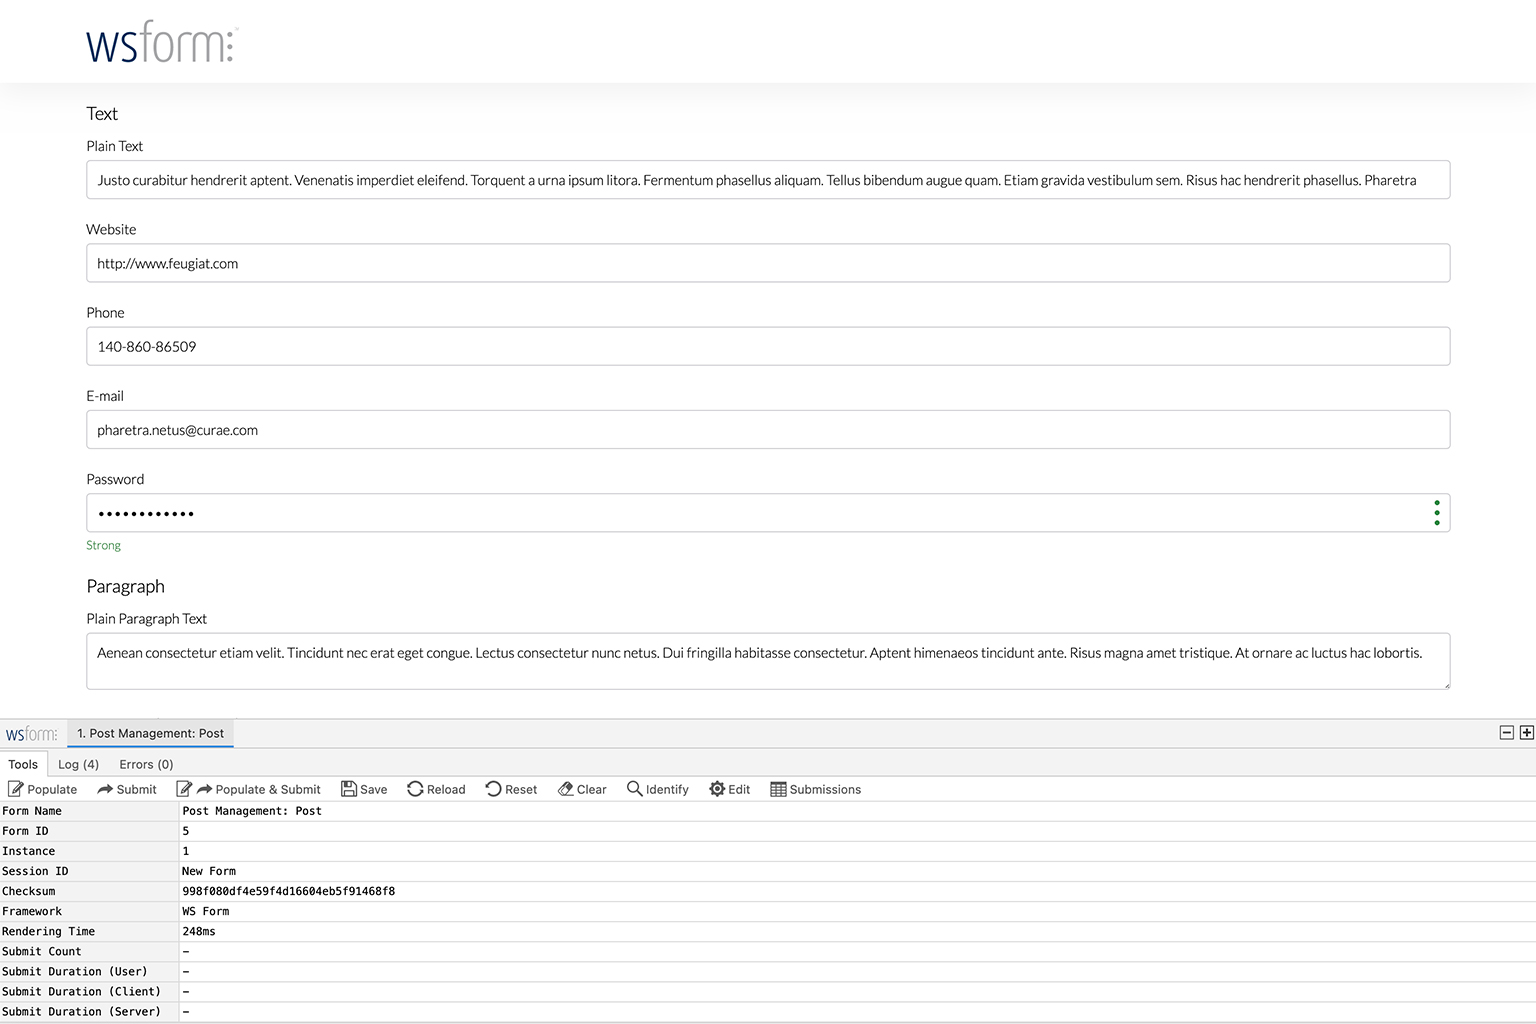 WS Form Pods Tutorial - Preview and Populate via the Debug Console